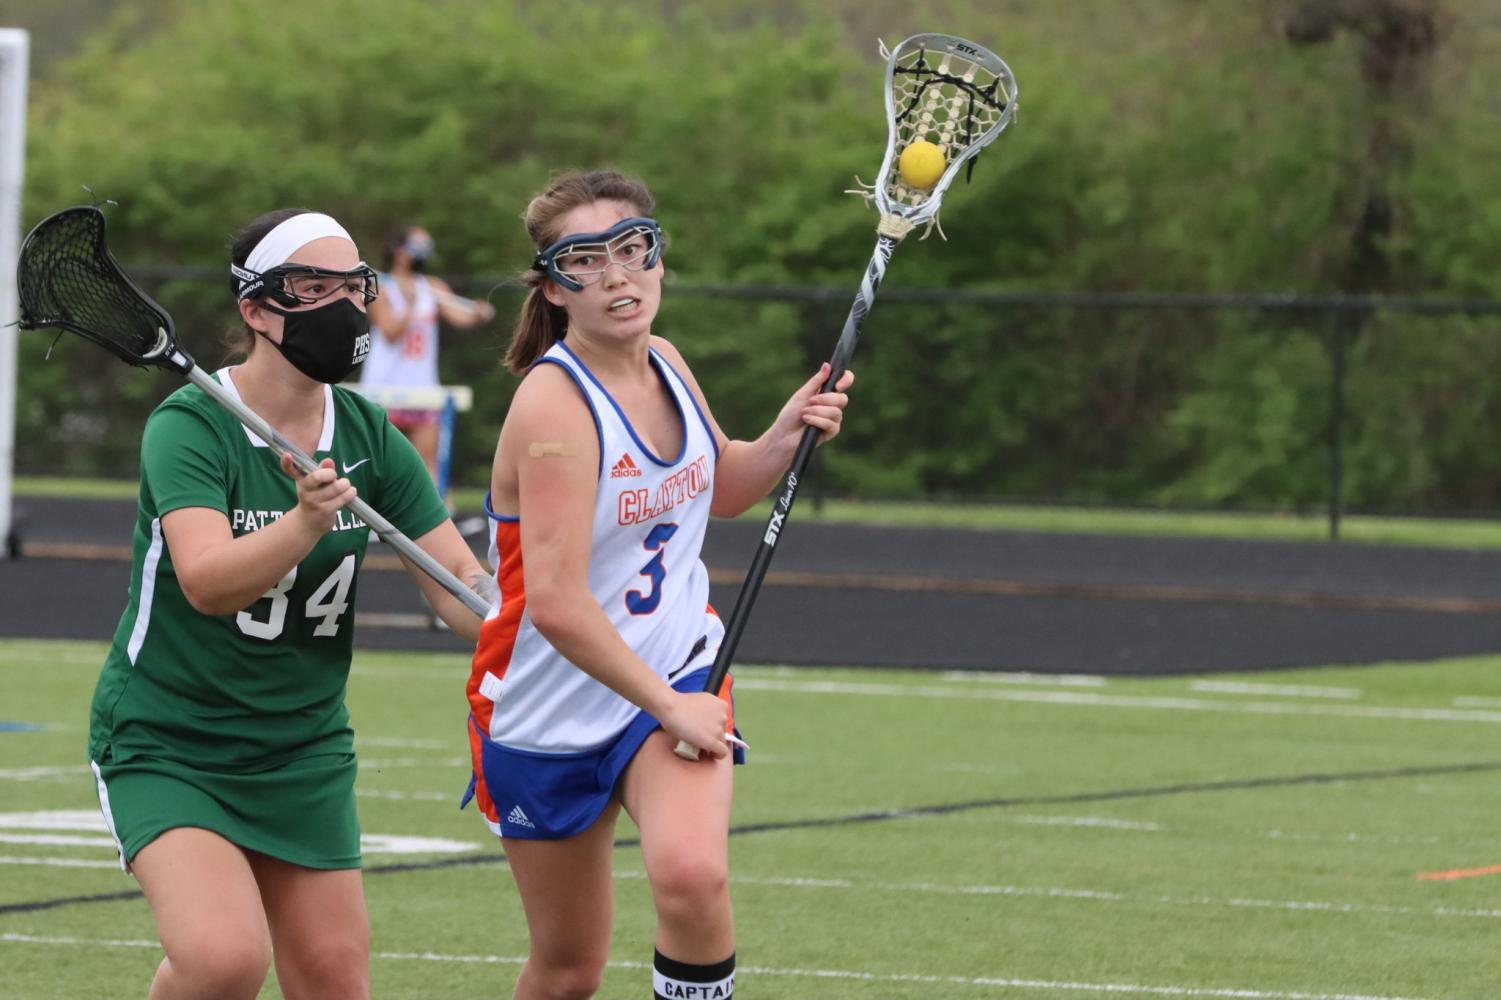 Sarah Centeno carries the ball down the field in a game against Pattonville